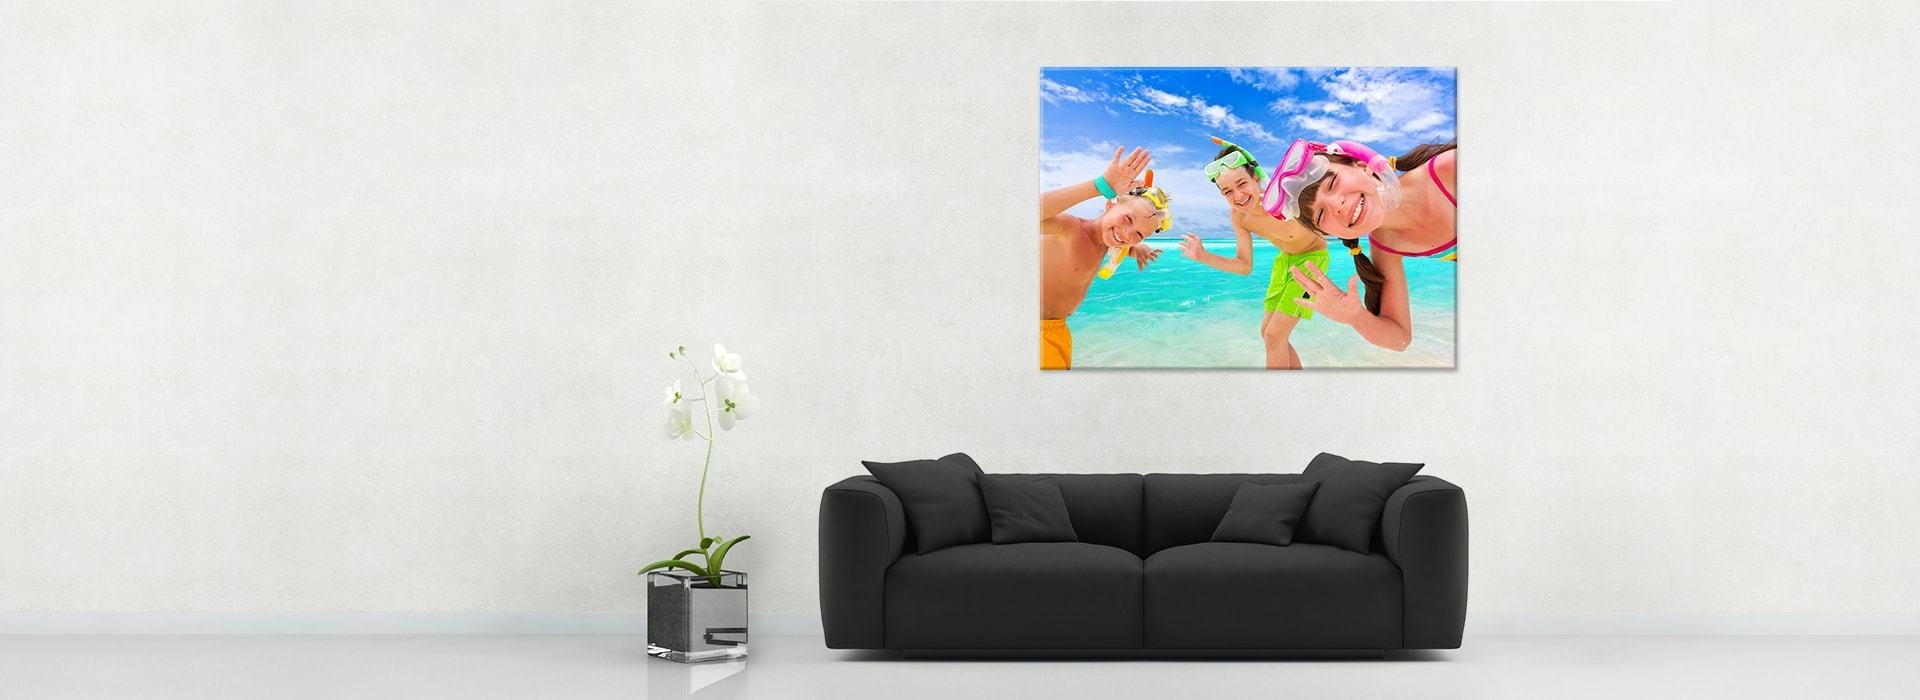 Canvas Prints | Canvas Factory Throughout Recent Canvas Wall Art Of Philippines (View 7 of 15)